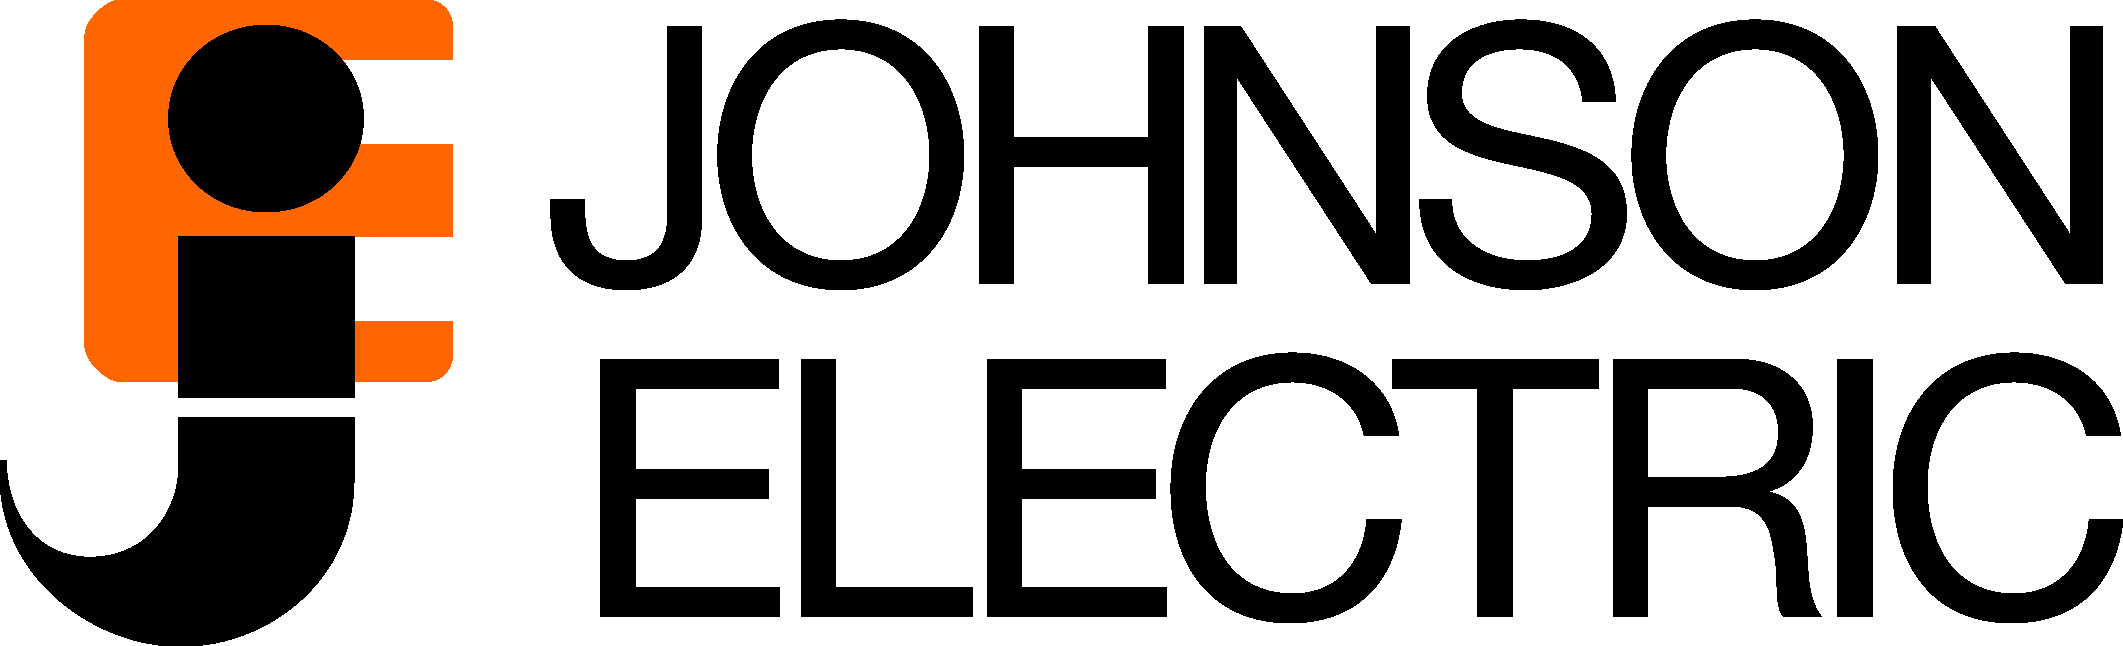 Johnson Electric reports results for the year ended 31 March 2021